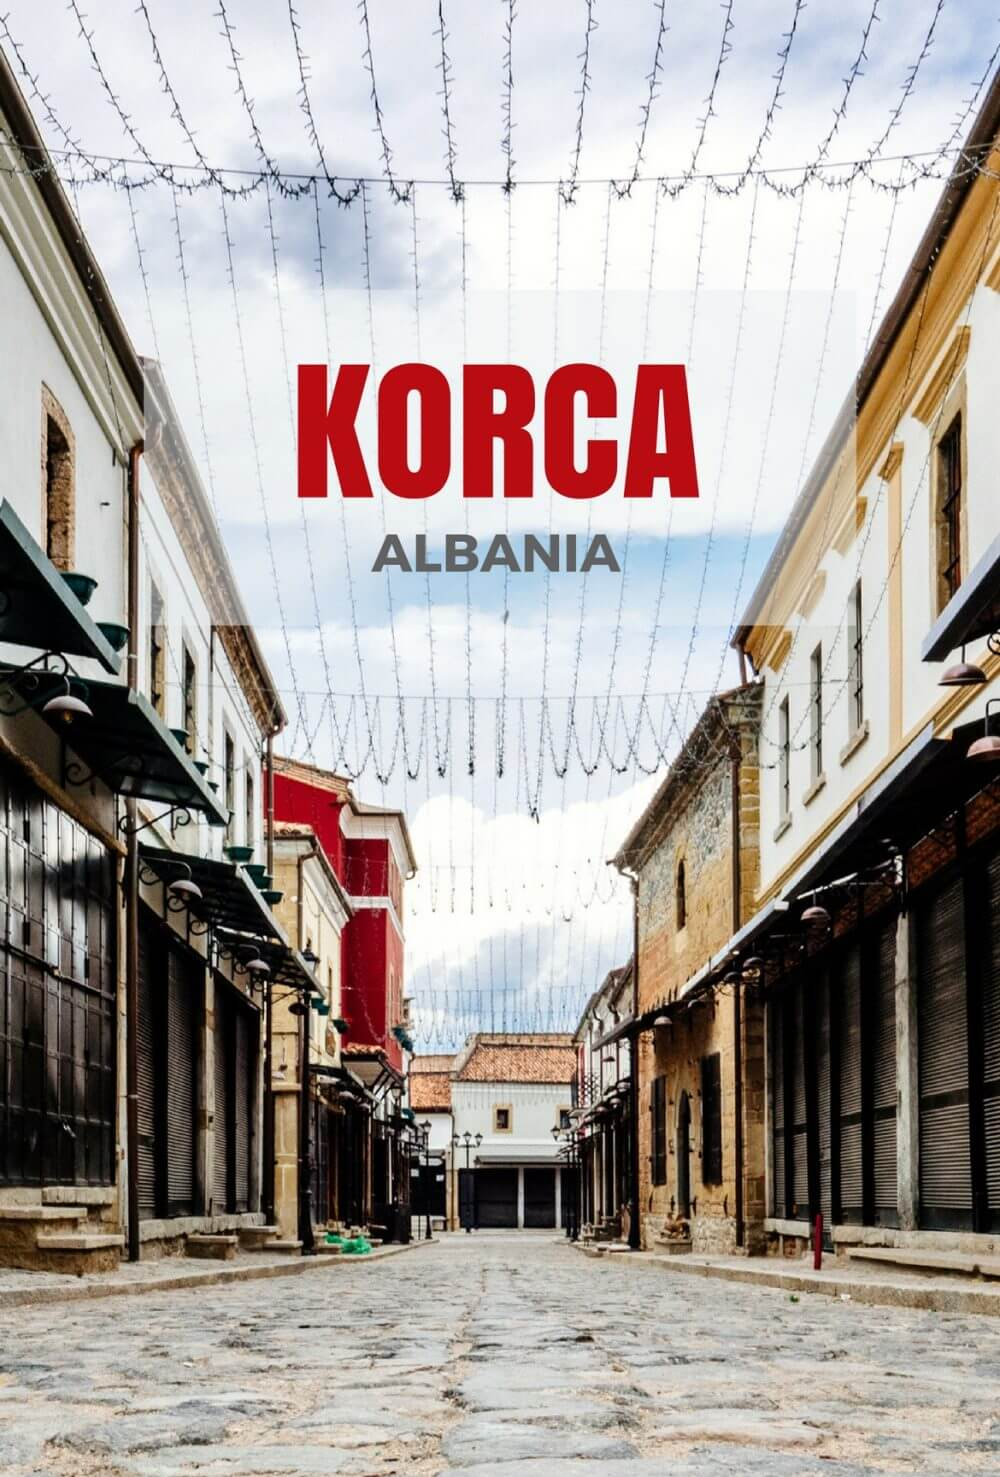 Things to Do in Korca: My New Fave Albanian City